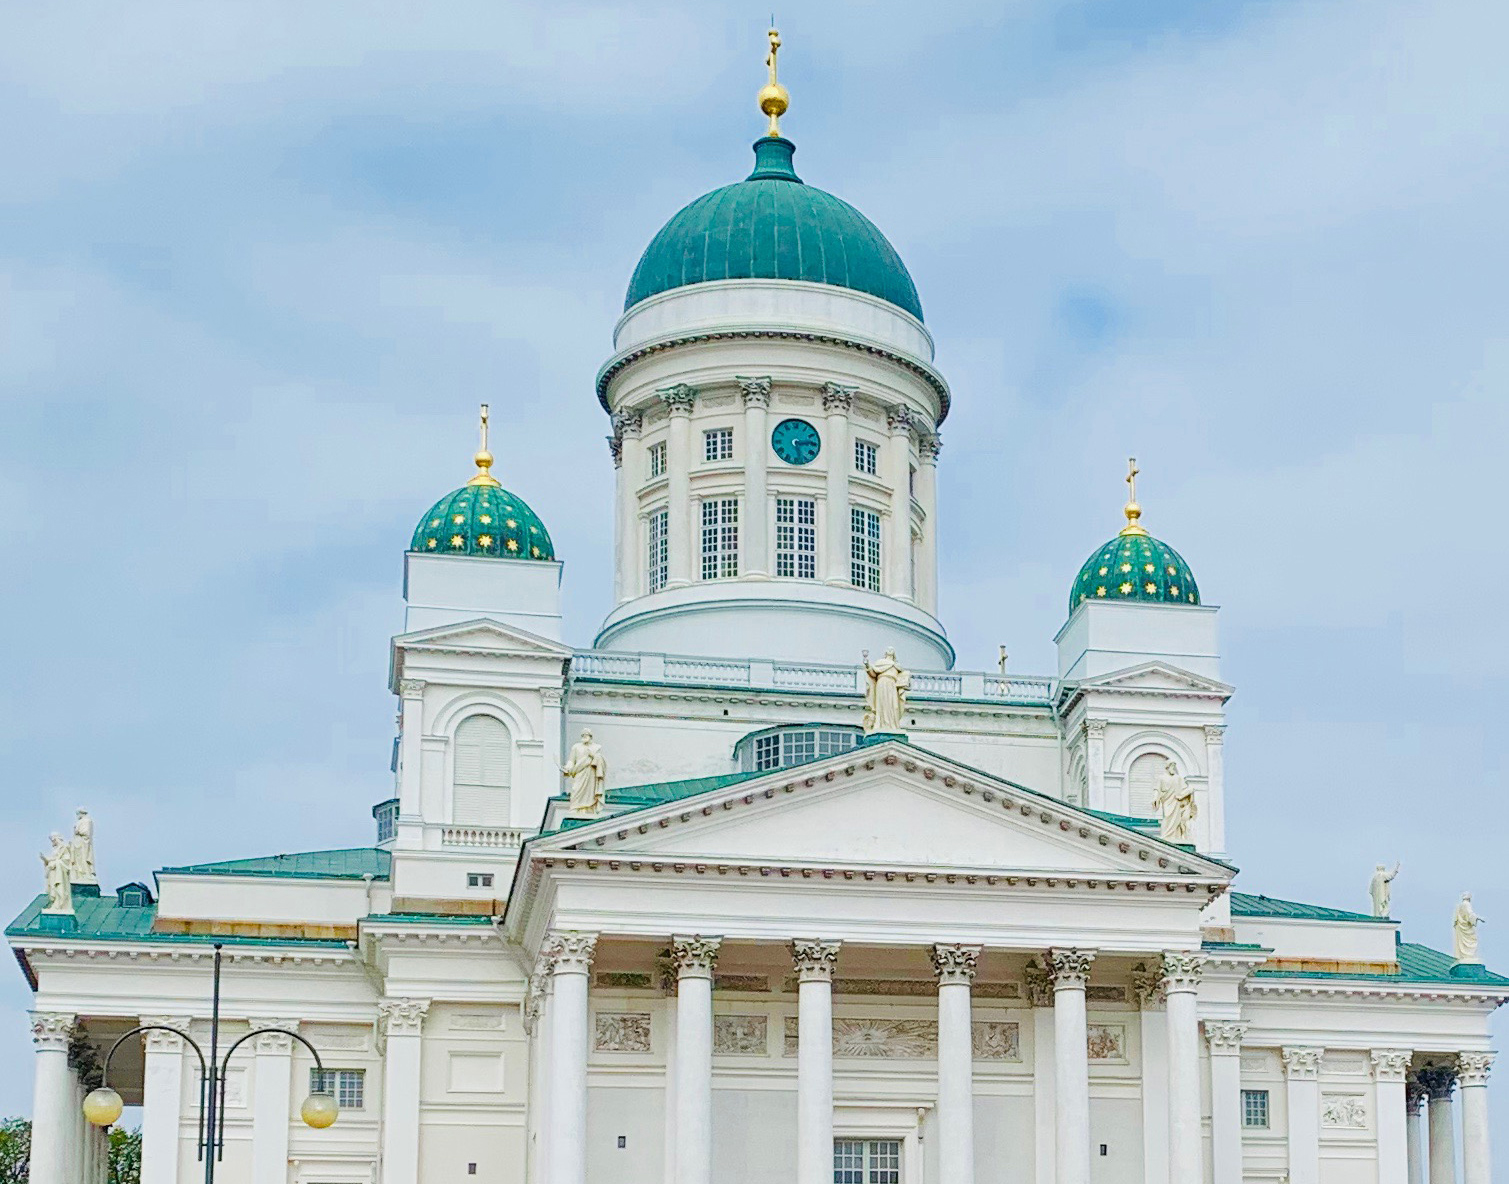 The neoclassical, green-domed Lutheran Cathedral | Helsinki | Finland| STIRworld